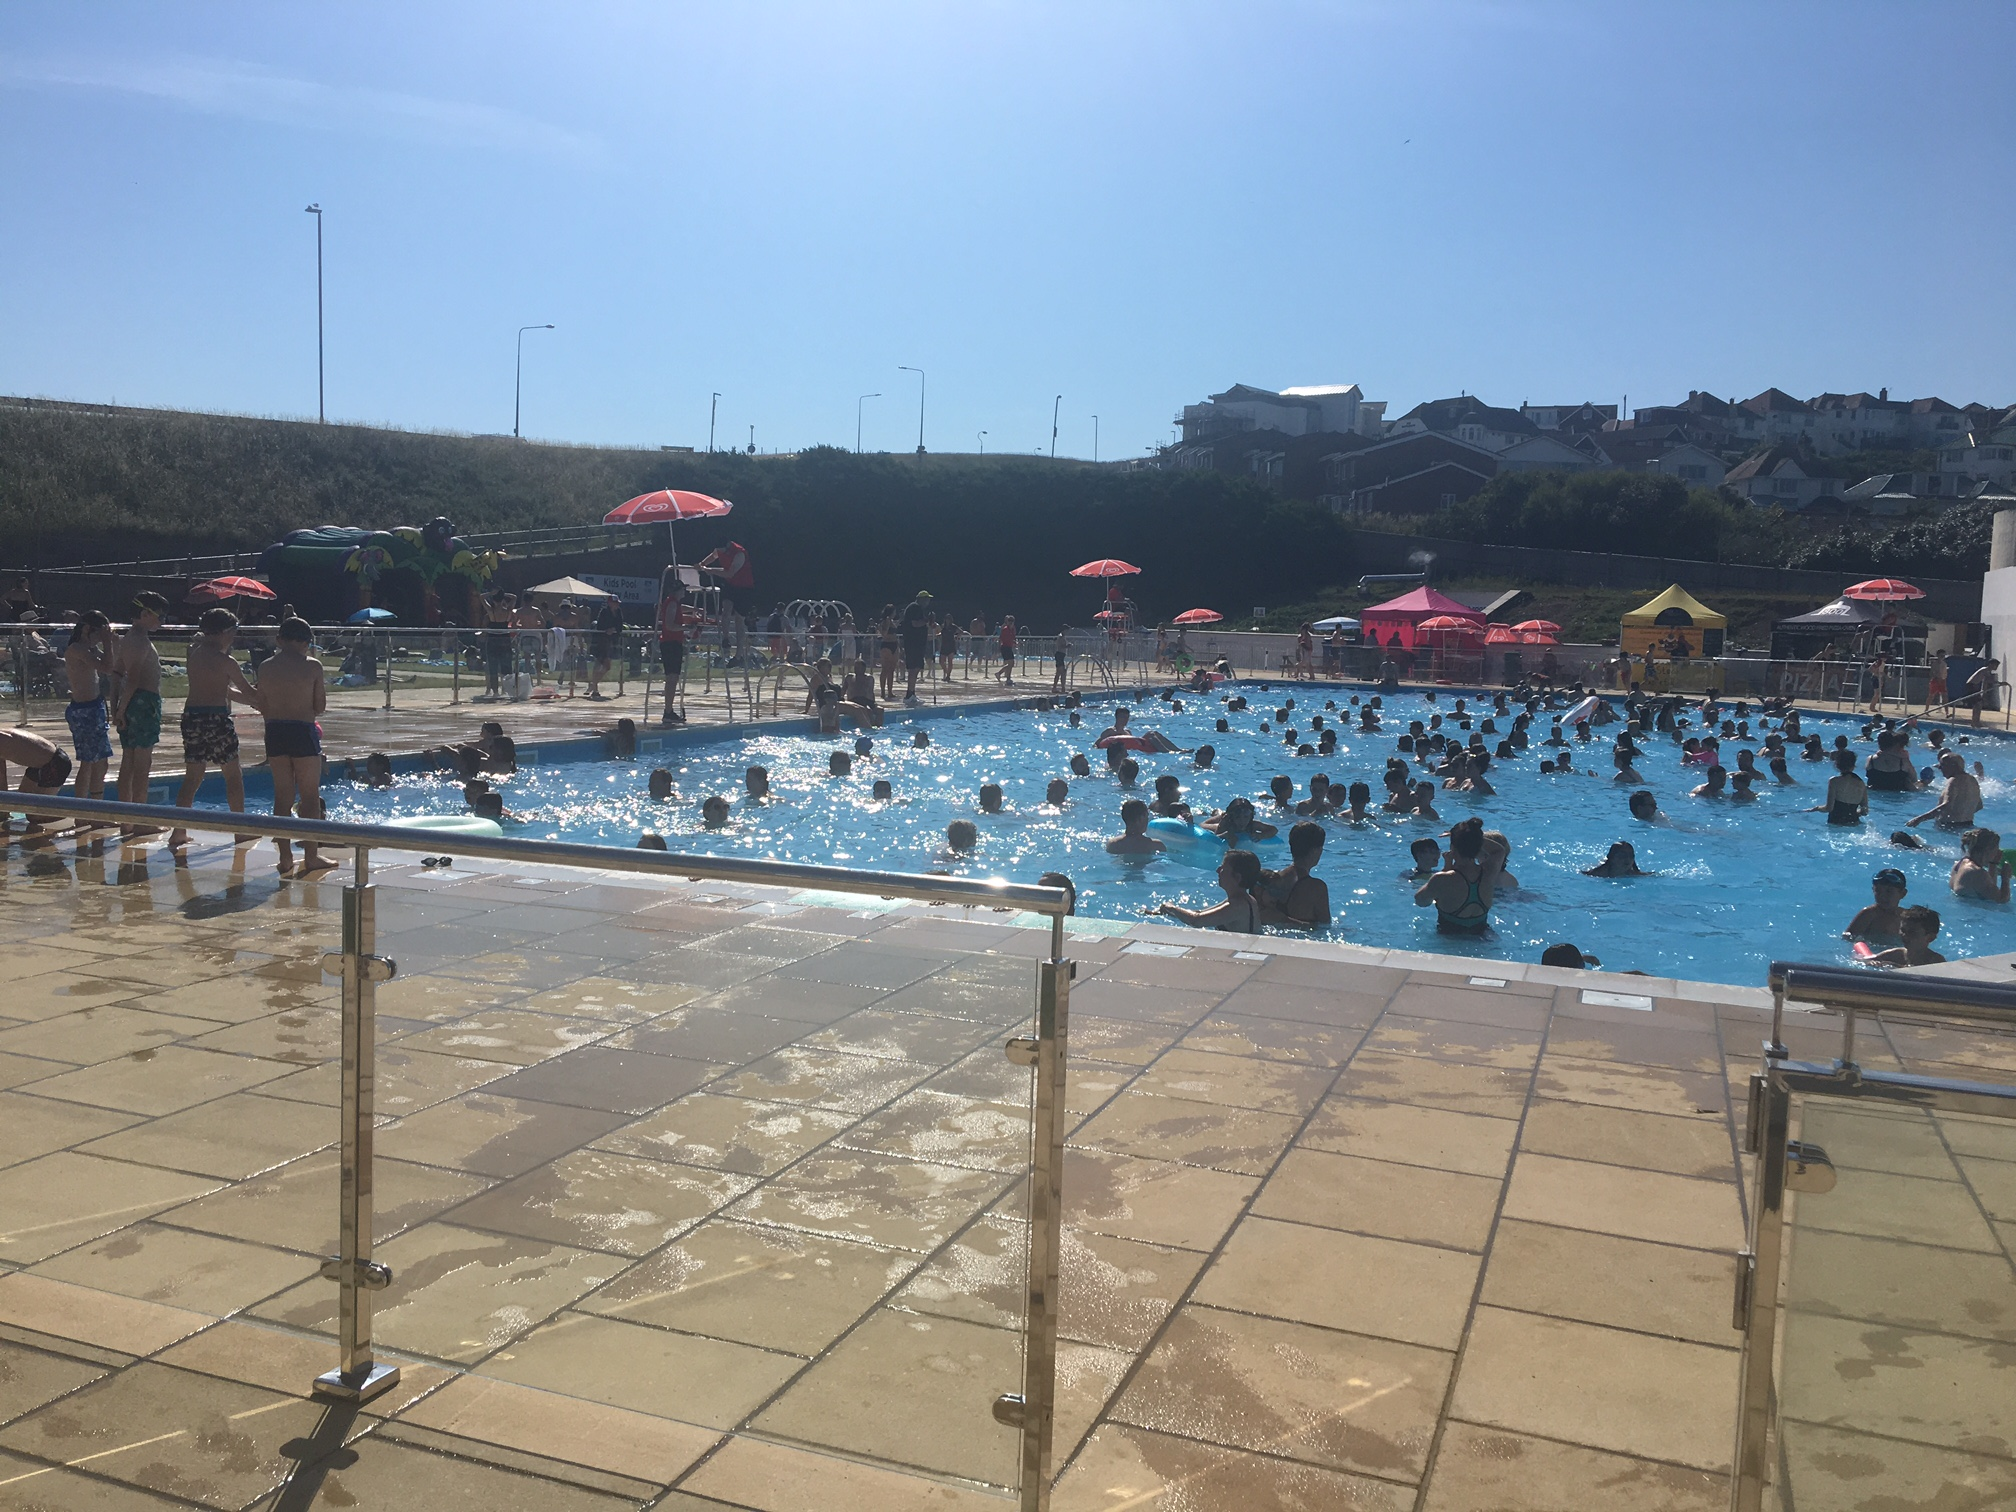 Planning Your Visit To The Lido Saltdean Lido Community